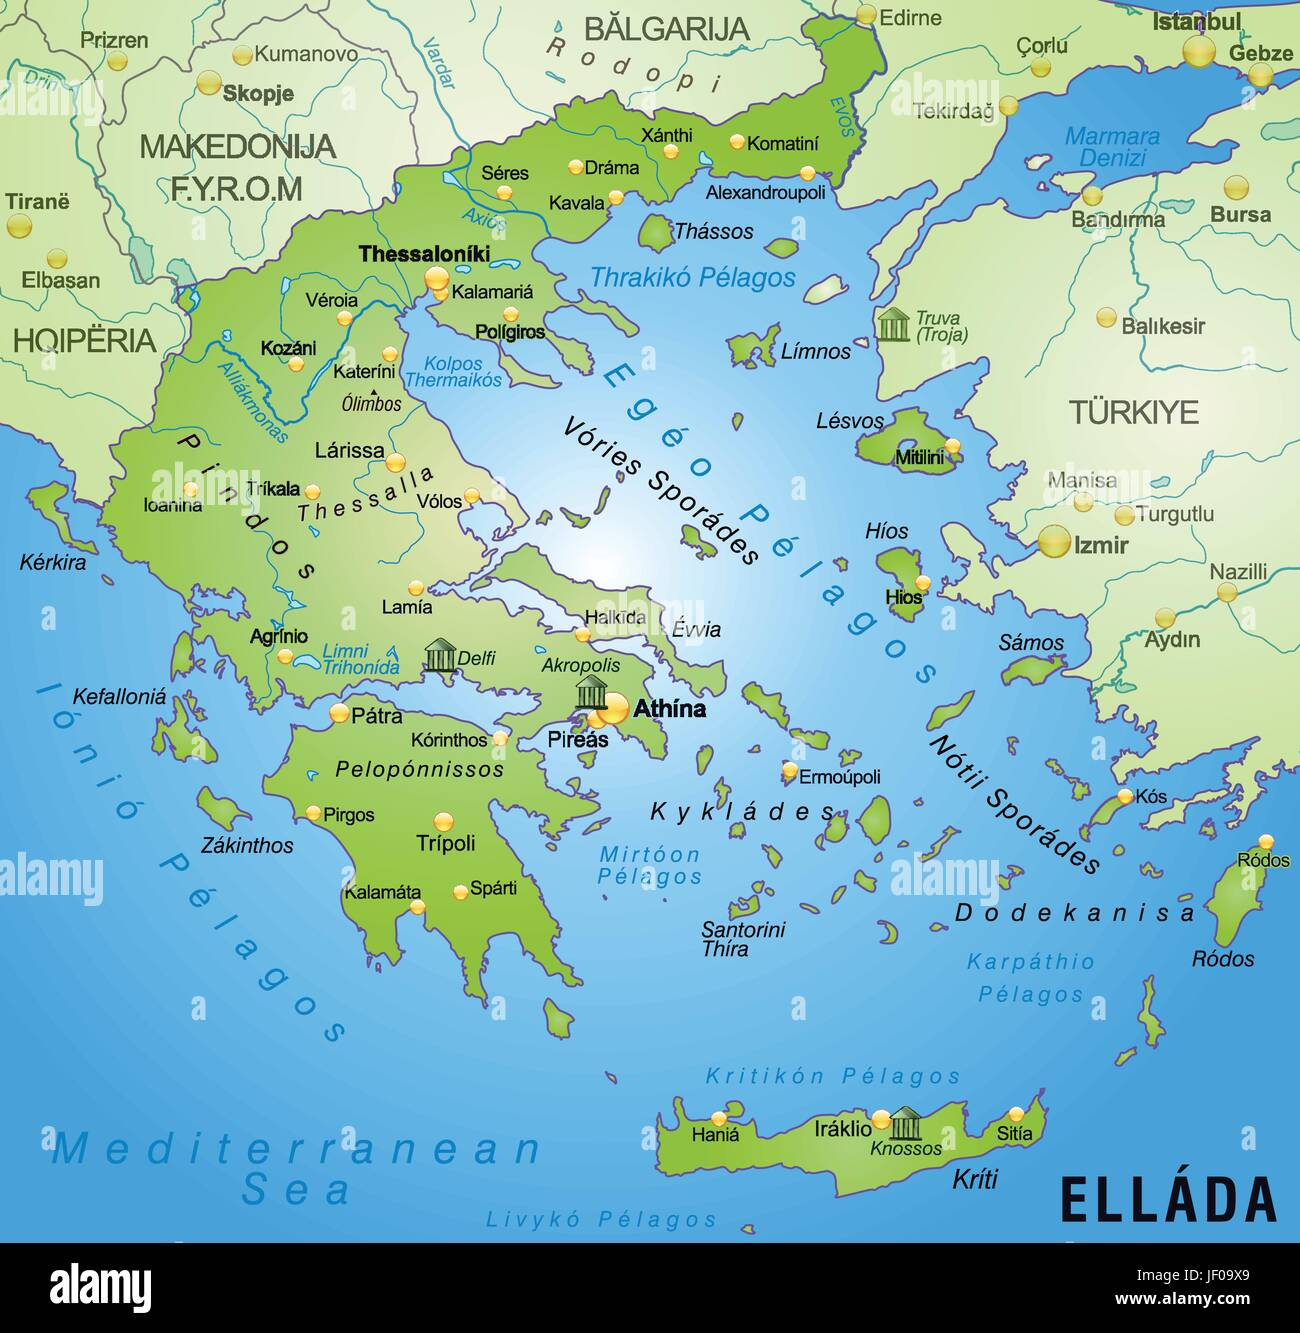 Card atlas map of the world map greece border card synopsis card atlas map of the world map greece border card synopsis borders gumiabroncs Gallery